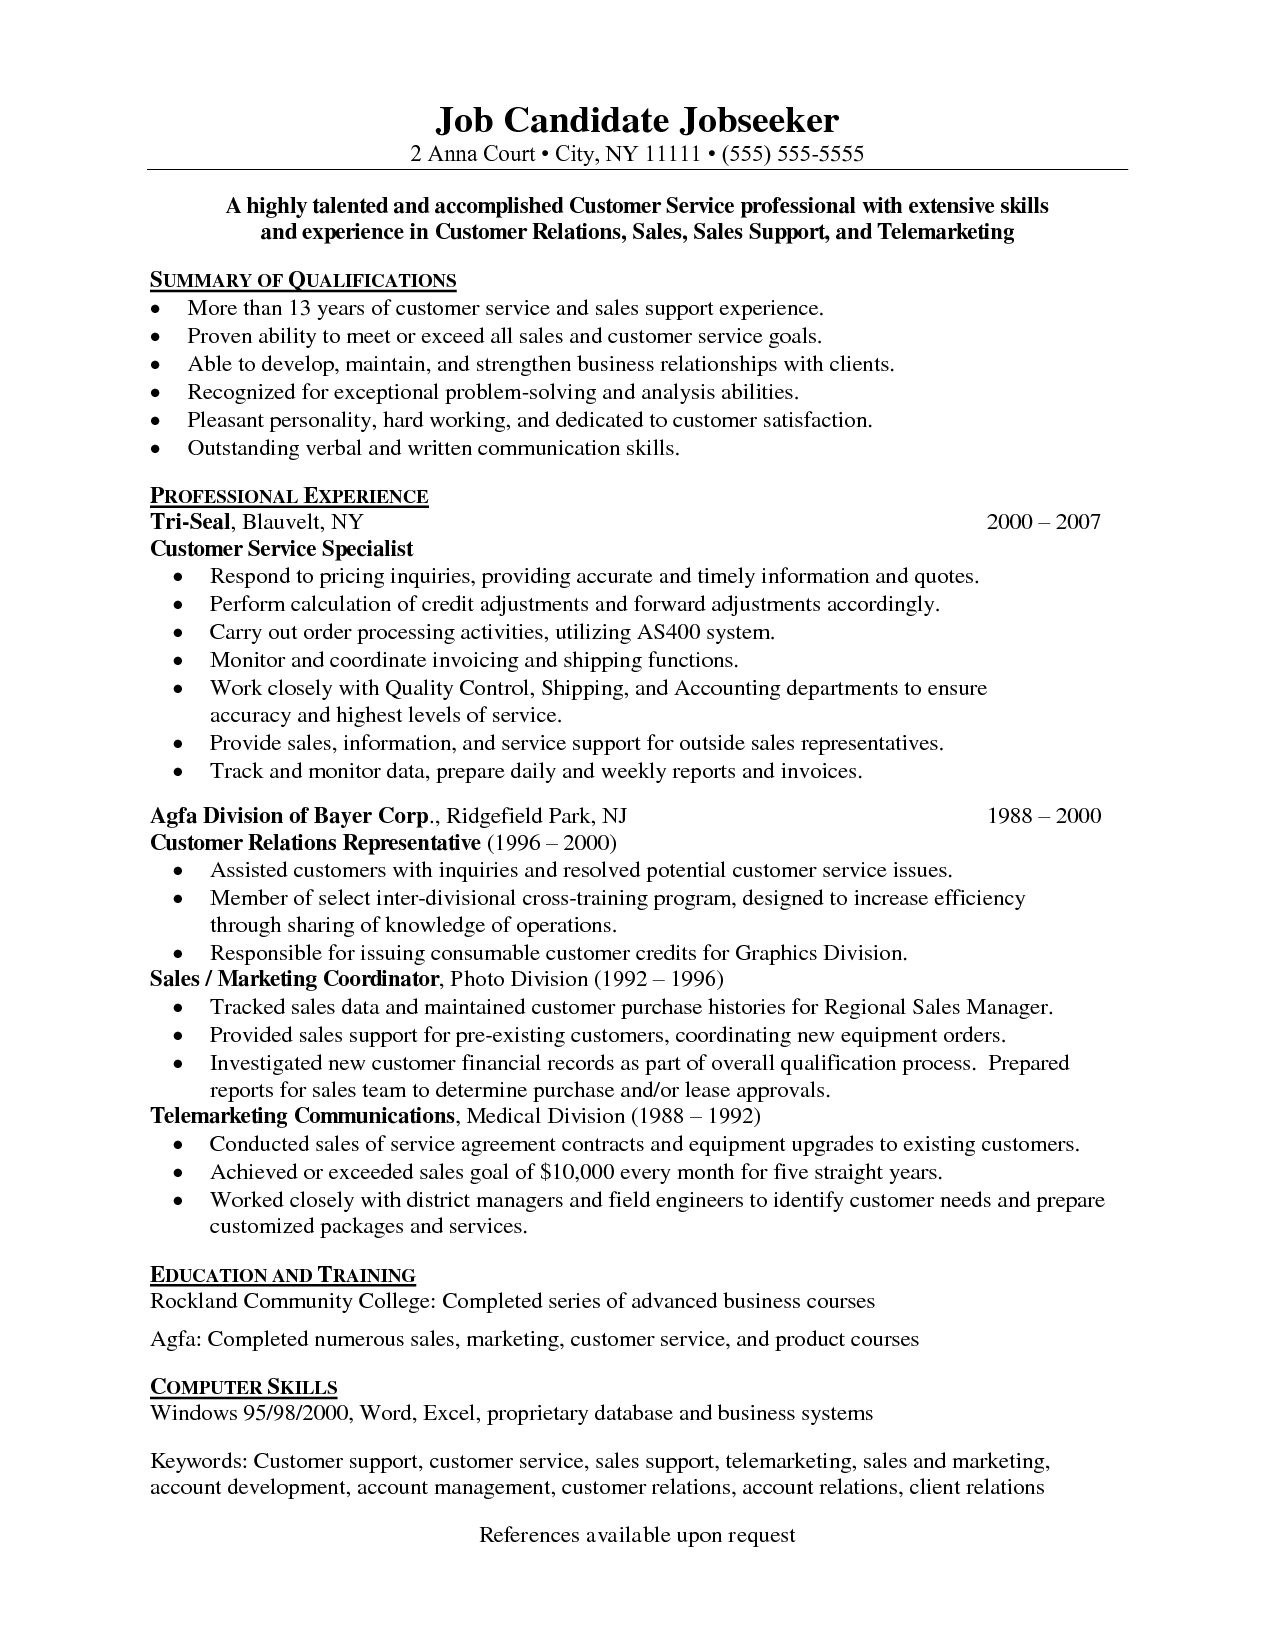 Customer Service Experience Resume - Resume Skills Examples Customer Service Refrence Beautiful Grapher